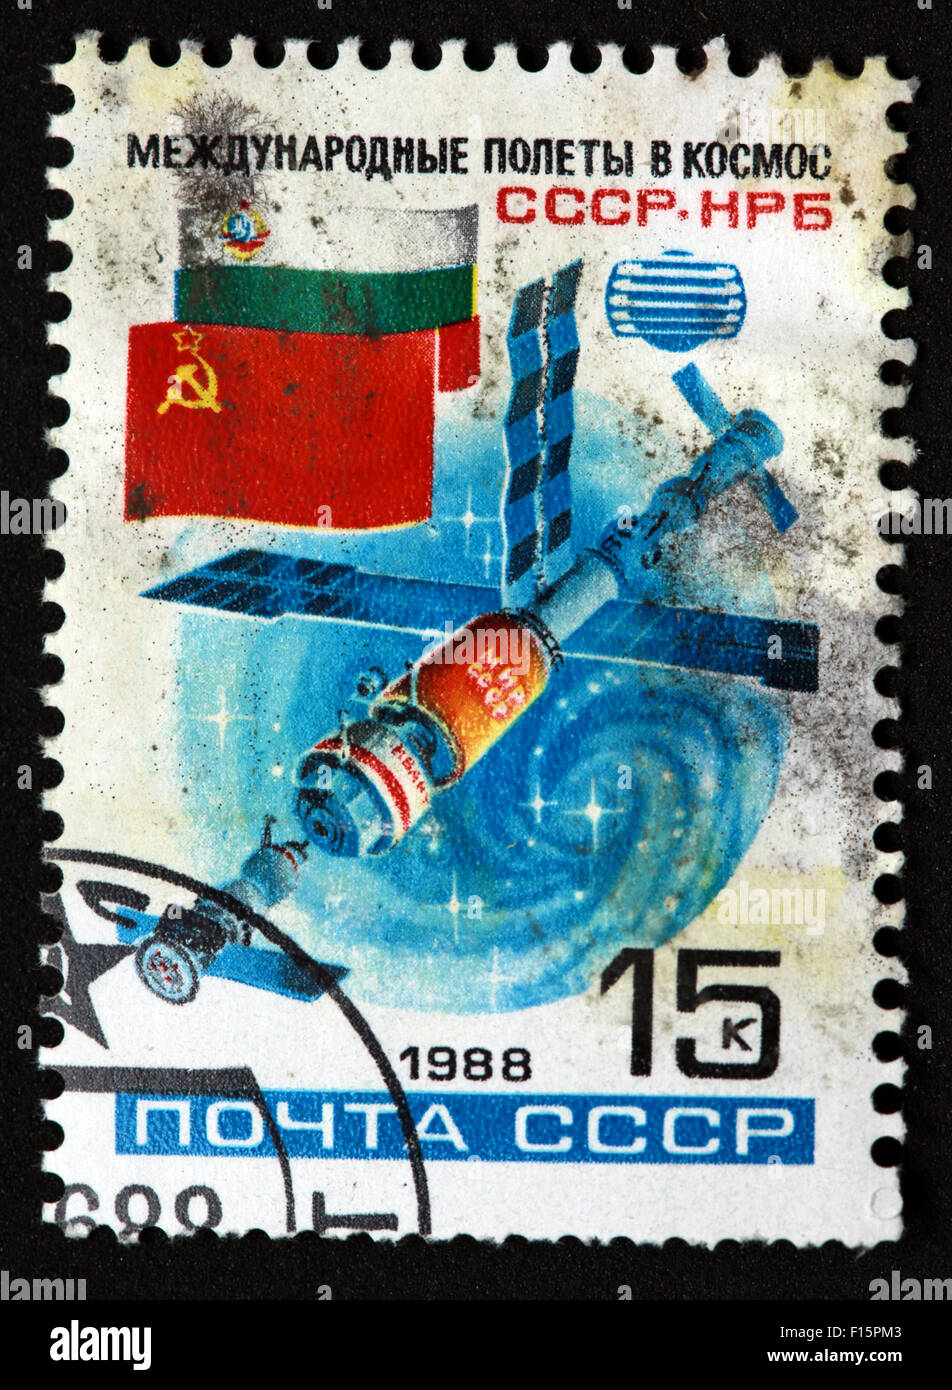 International Post,star,Used and Postmarked,Used,and,postmarked,perforated,stamp,Used,and,postmarked,Stamp,post,posting,mail,hobby,perforation,mark,postage,stamp,print,stamp,cancelled,stamp,payment,correspondence,postman,collection,collector,phila,USSR,Soviet,Bloc,Block,East,Eastern,Europe,Russia,Gotonysmith,post,posting,mail,hobby,perforation,mark,postage,stamp,print,stamp,cancelled,canceled,stamp,payment,correspondence,postman,collection,collector,philately,philatelist,letter,price,history,retro,Australian,Vintage,delivery,date,relationship,communication,Oz,Australia,DownUnder,classic,rare,unique,Austrailian,financial,investment,invest,value,British,empire,nation,canceled,printed,on,black,background,close-up,closeup,close,up,sent,send,philately,mailing,shipping,postoffice,office,isolated,circa,special,colour,color,postmarked,marked,airmail,aged,antique,retro,cutting,historic,old,stamps,collection,stamp collection,album,Timbre,Sello,Stempel,Selo,Buy Pictures of,Buy Images Of,Down Under,Black background